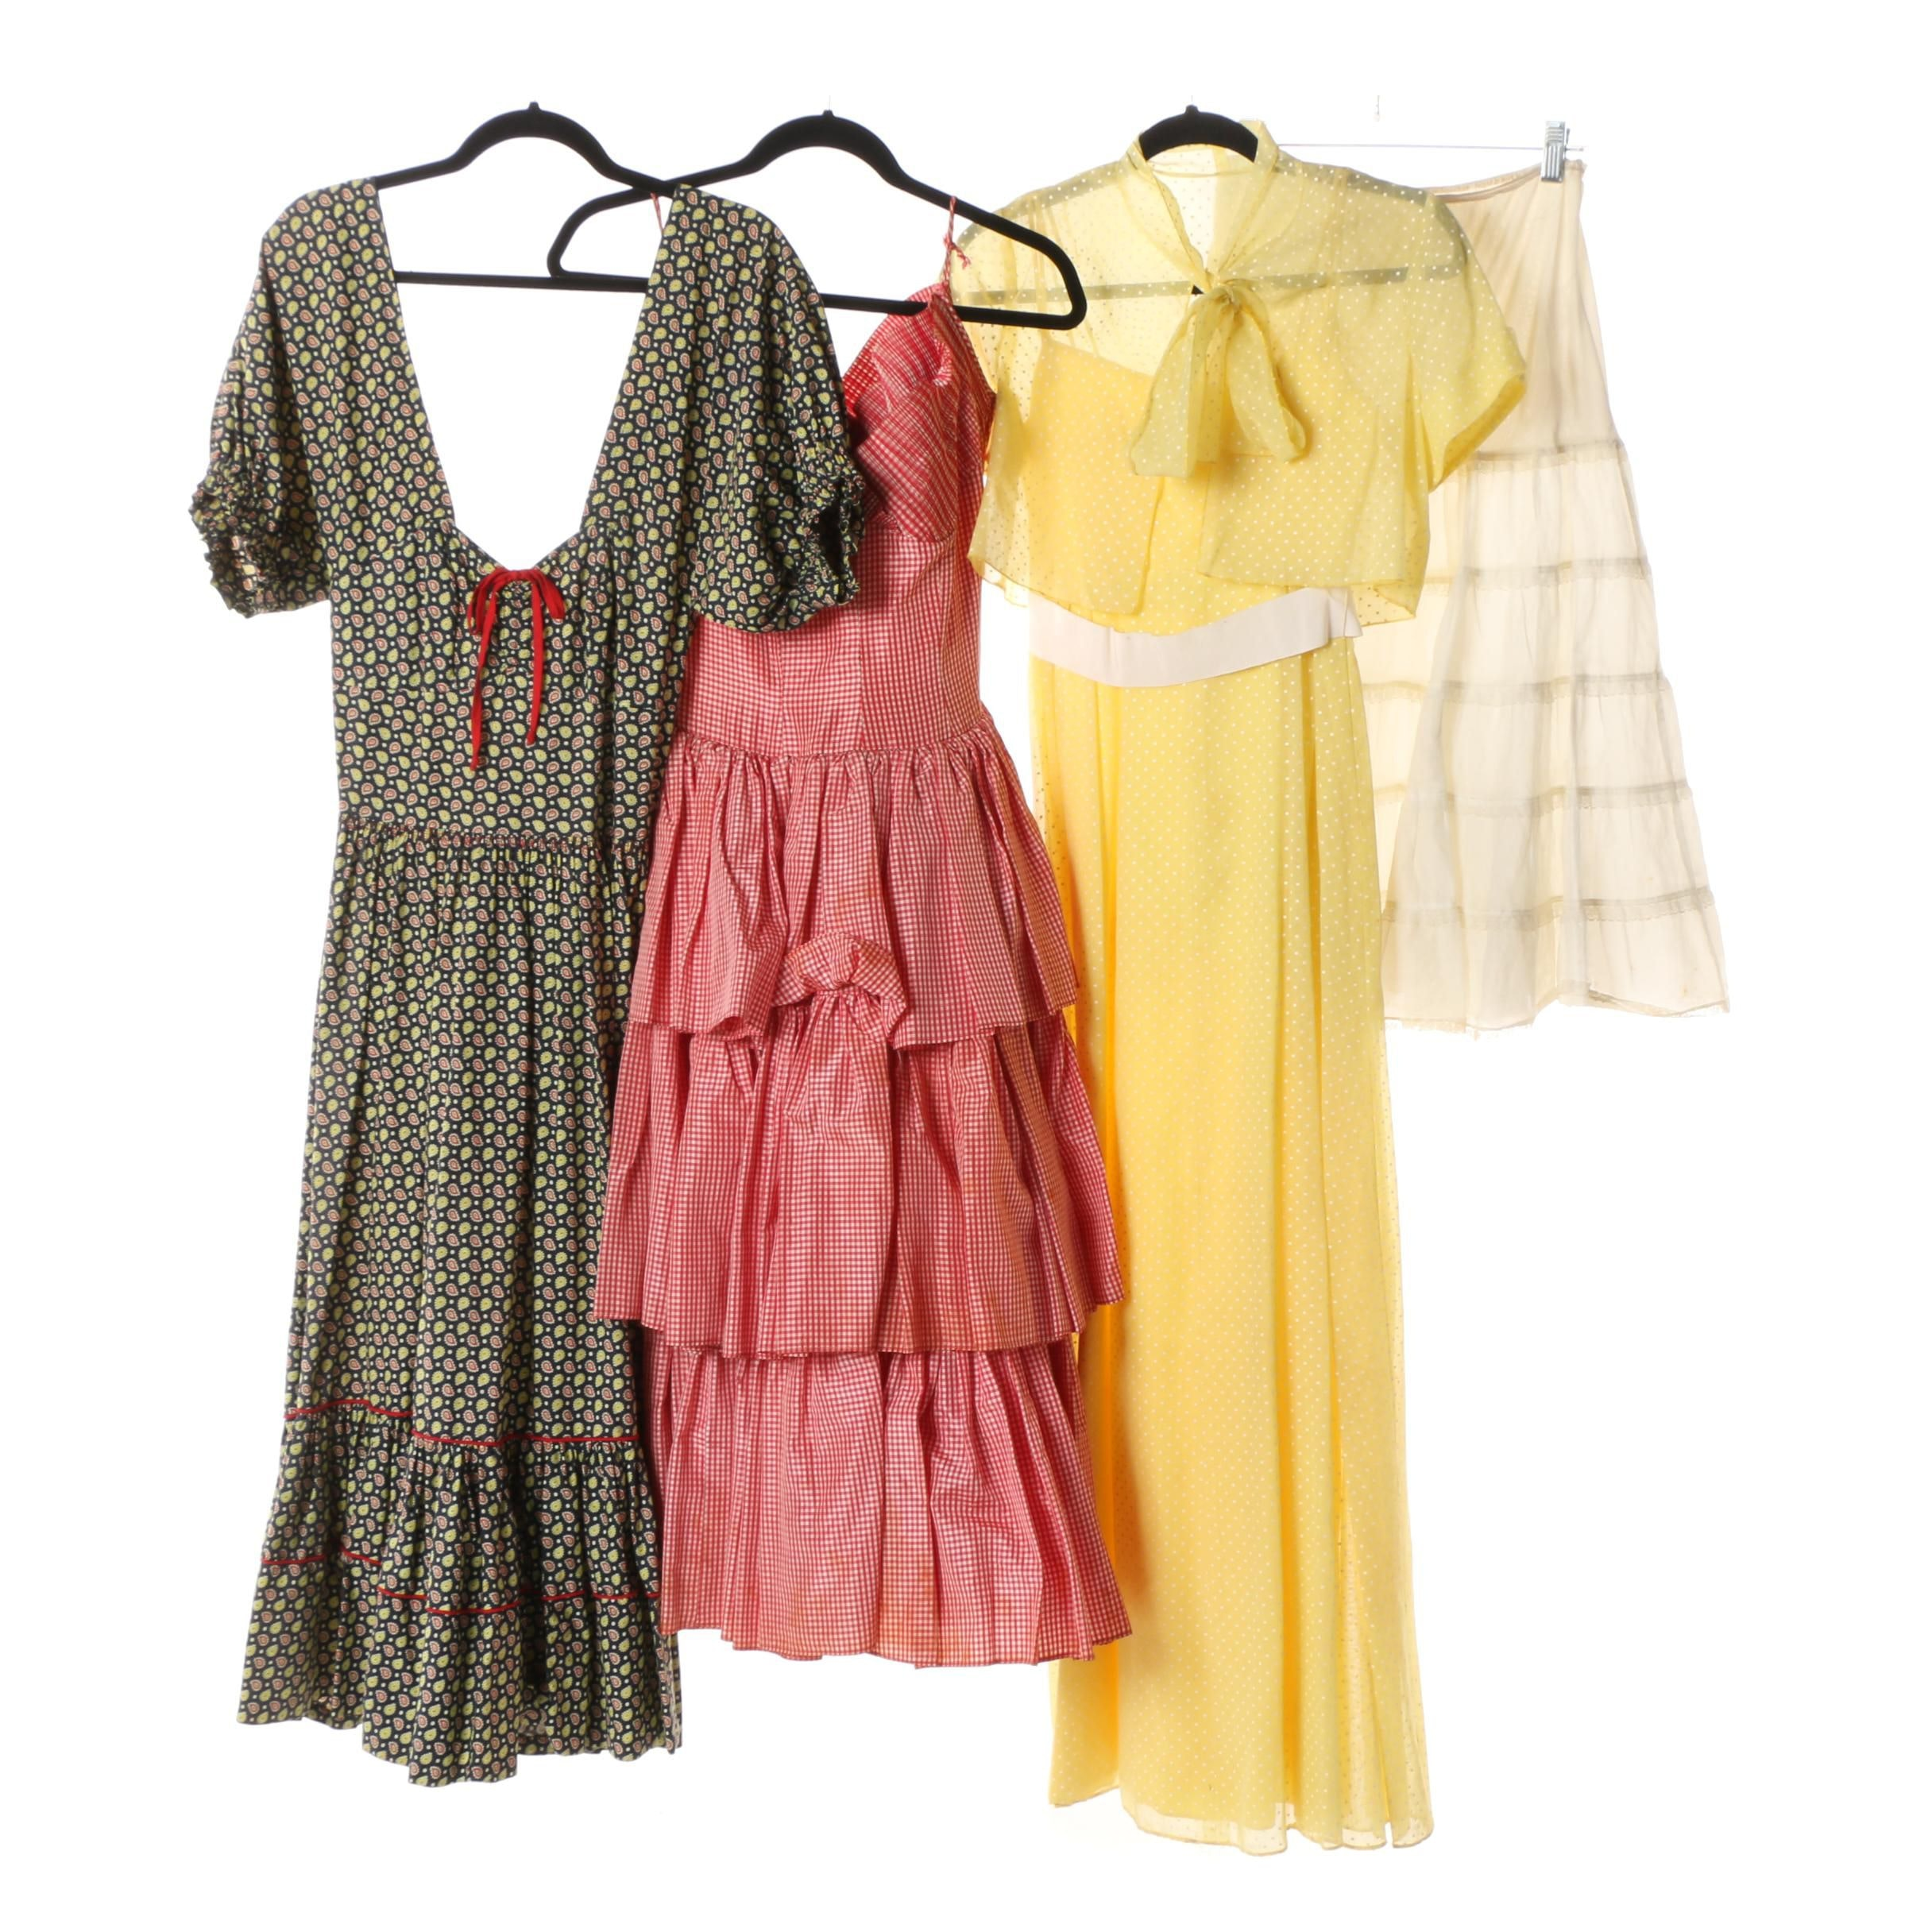 Women's Vintage Dresses Including Howard Norm Original Gingham Dress